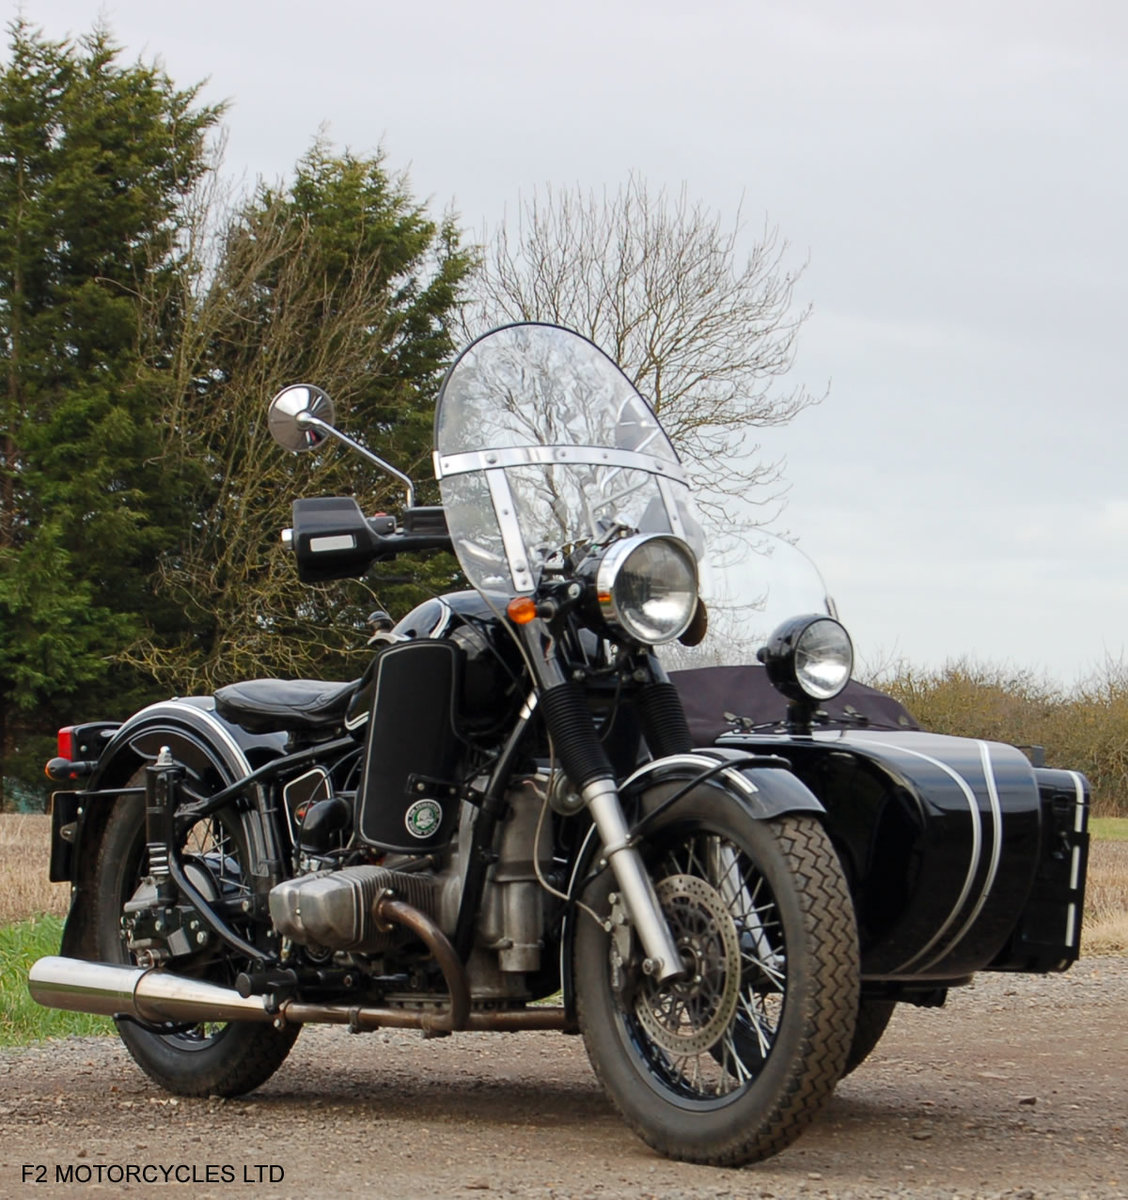 2011 Ural 750 Retro Sidecar, UK spec, UK registered SOLD (picture 5 of 5)